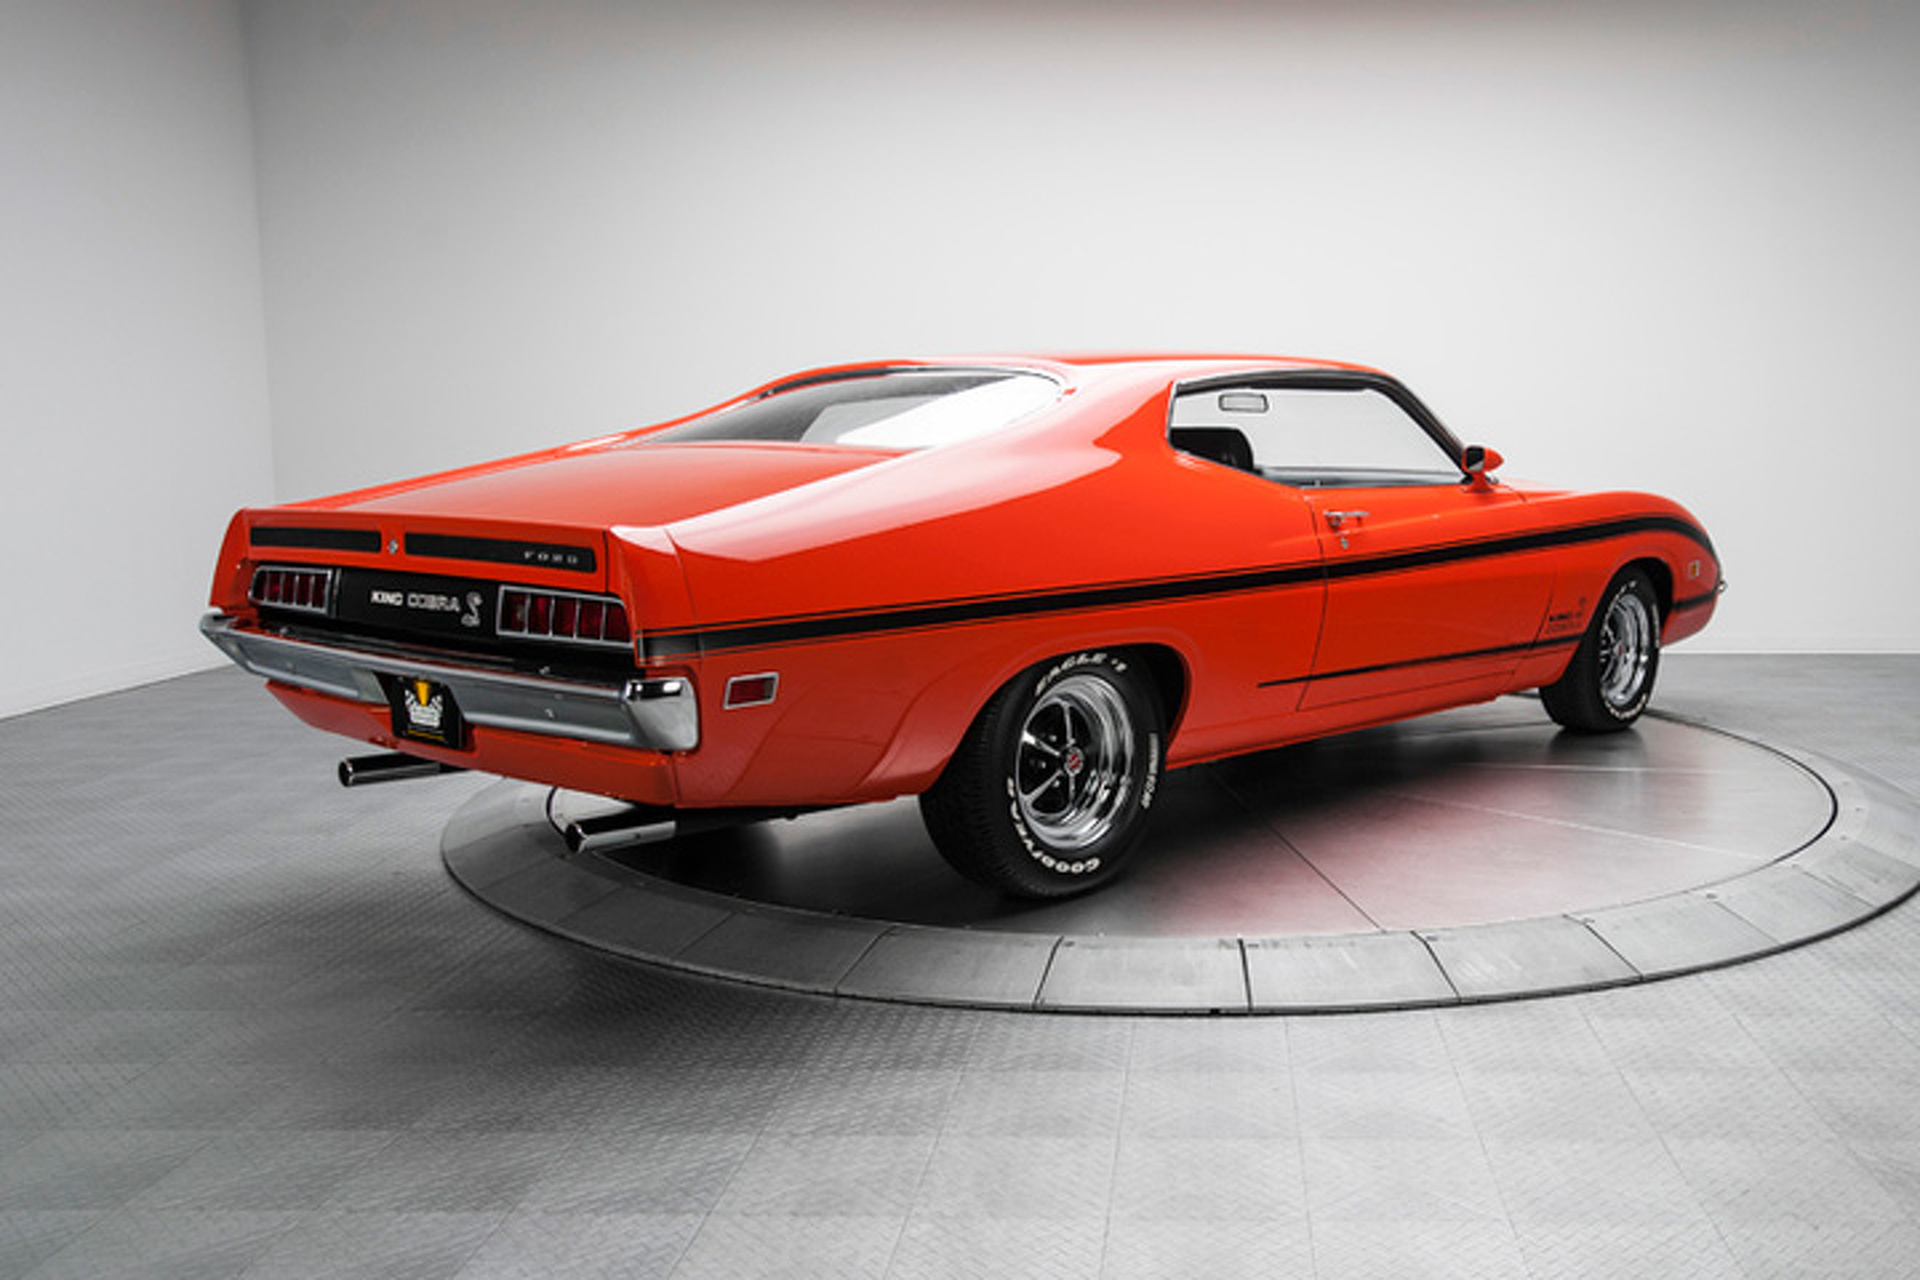 Rare Ford Torino Prototype To Display At Hilton Head Concours 1964 Chevy Impala Wiring Diagram